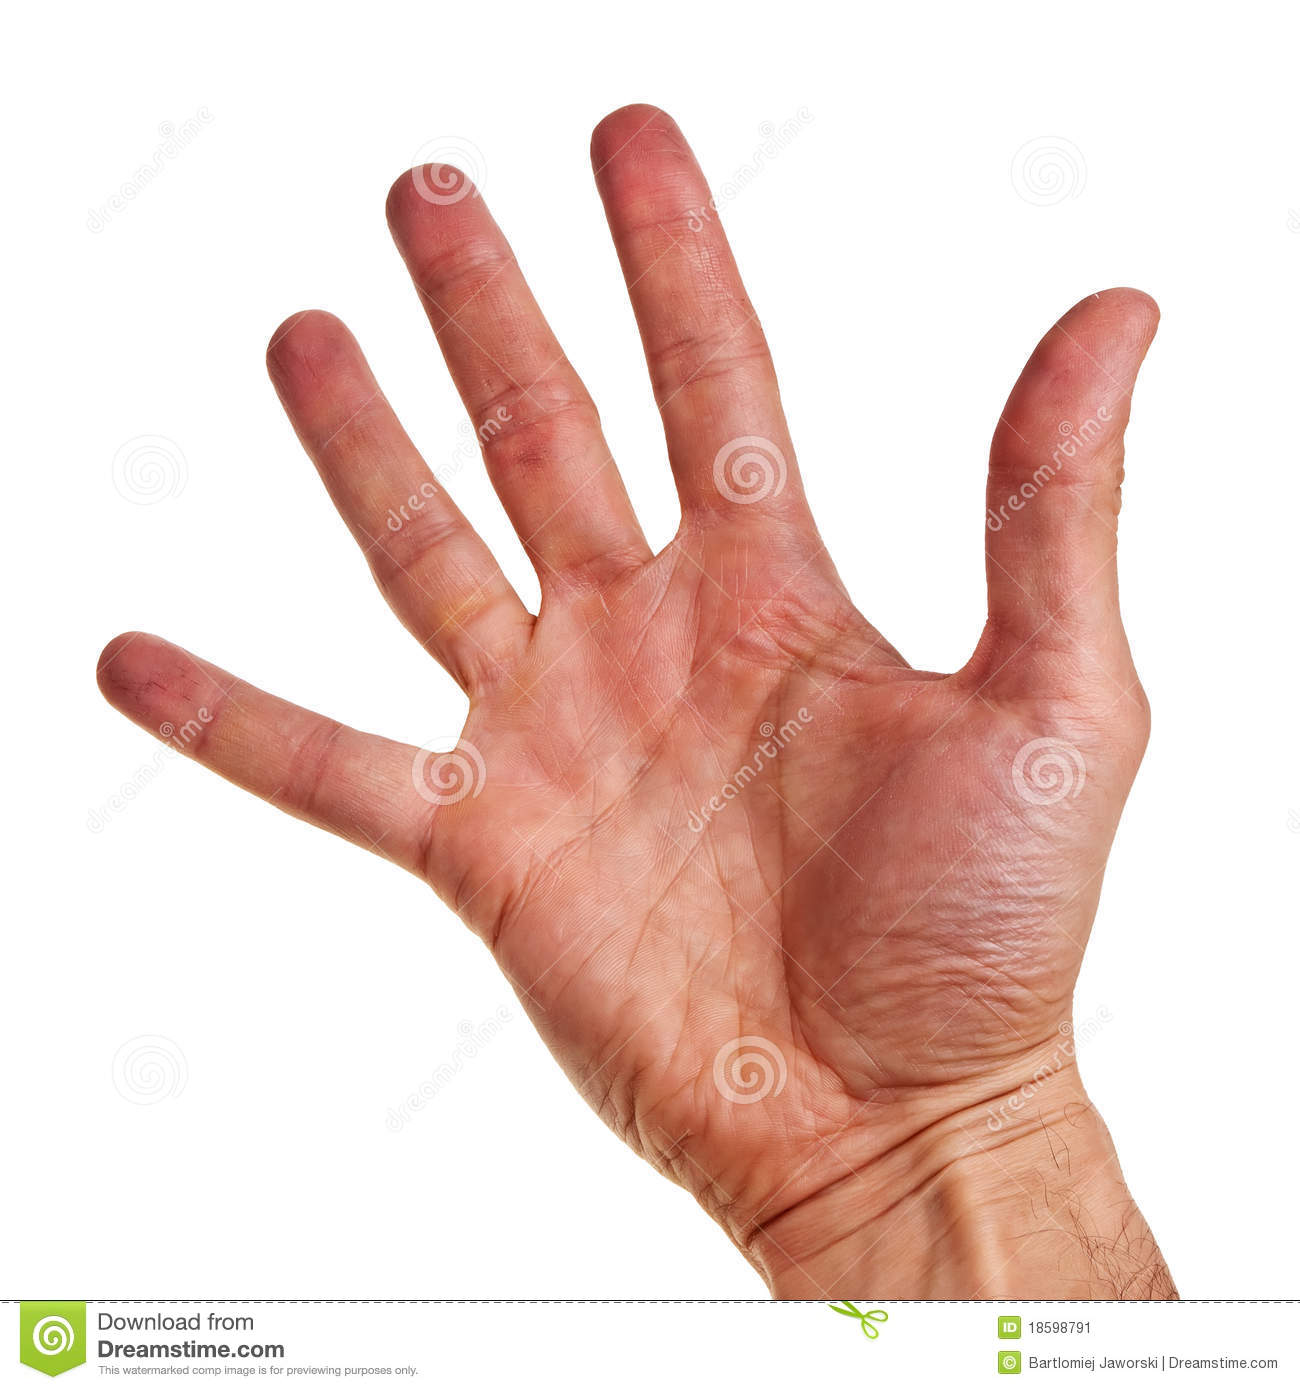 Caucasian Male Right Hand. Stock Image - Image: 18598791 Hand